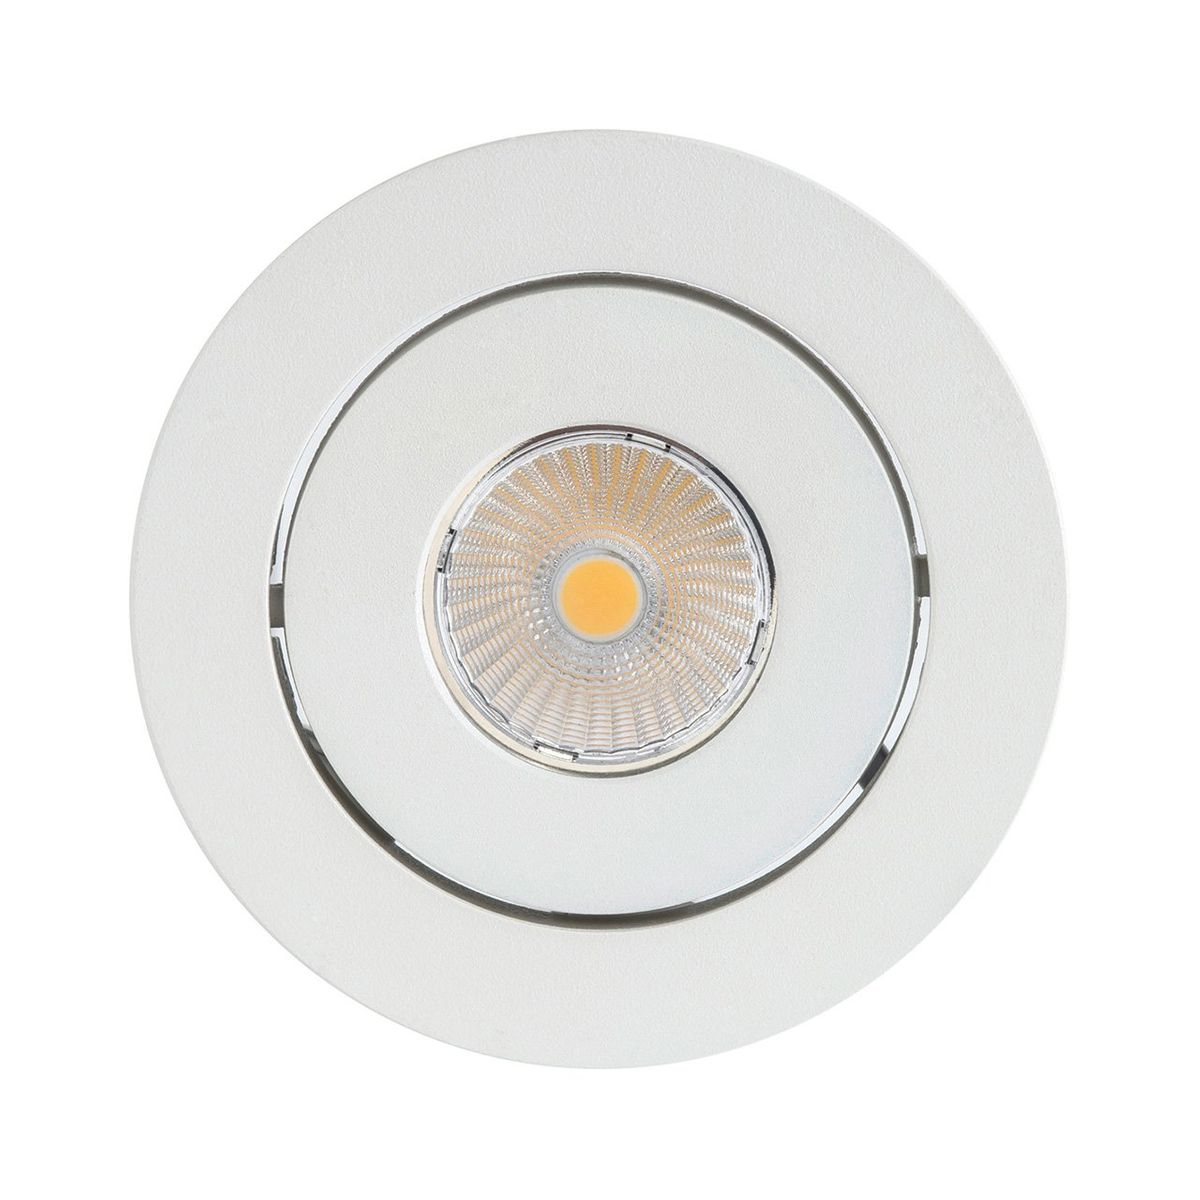 HV5512-WHT - PRIME White Tilt LED Downlight – Bild 3